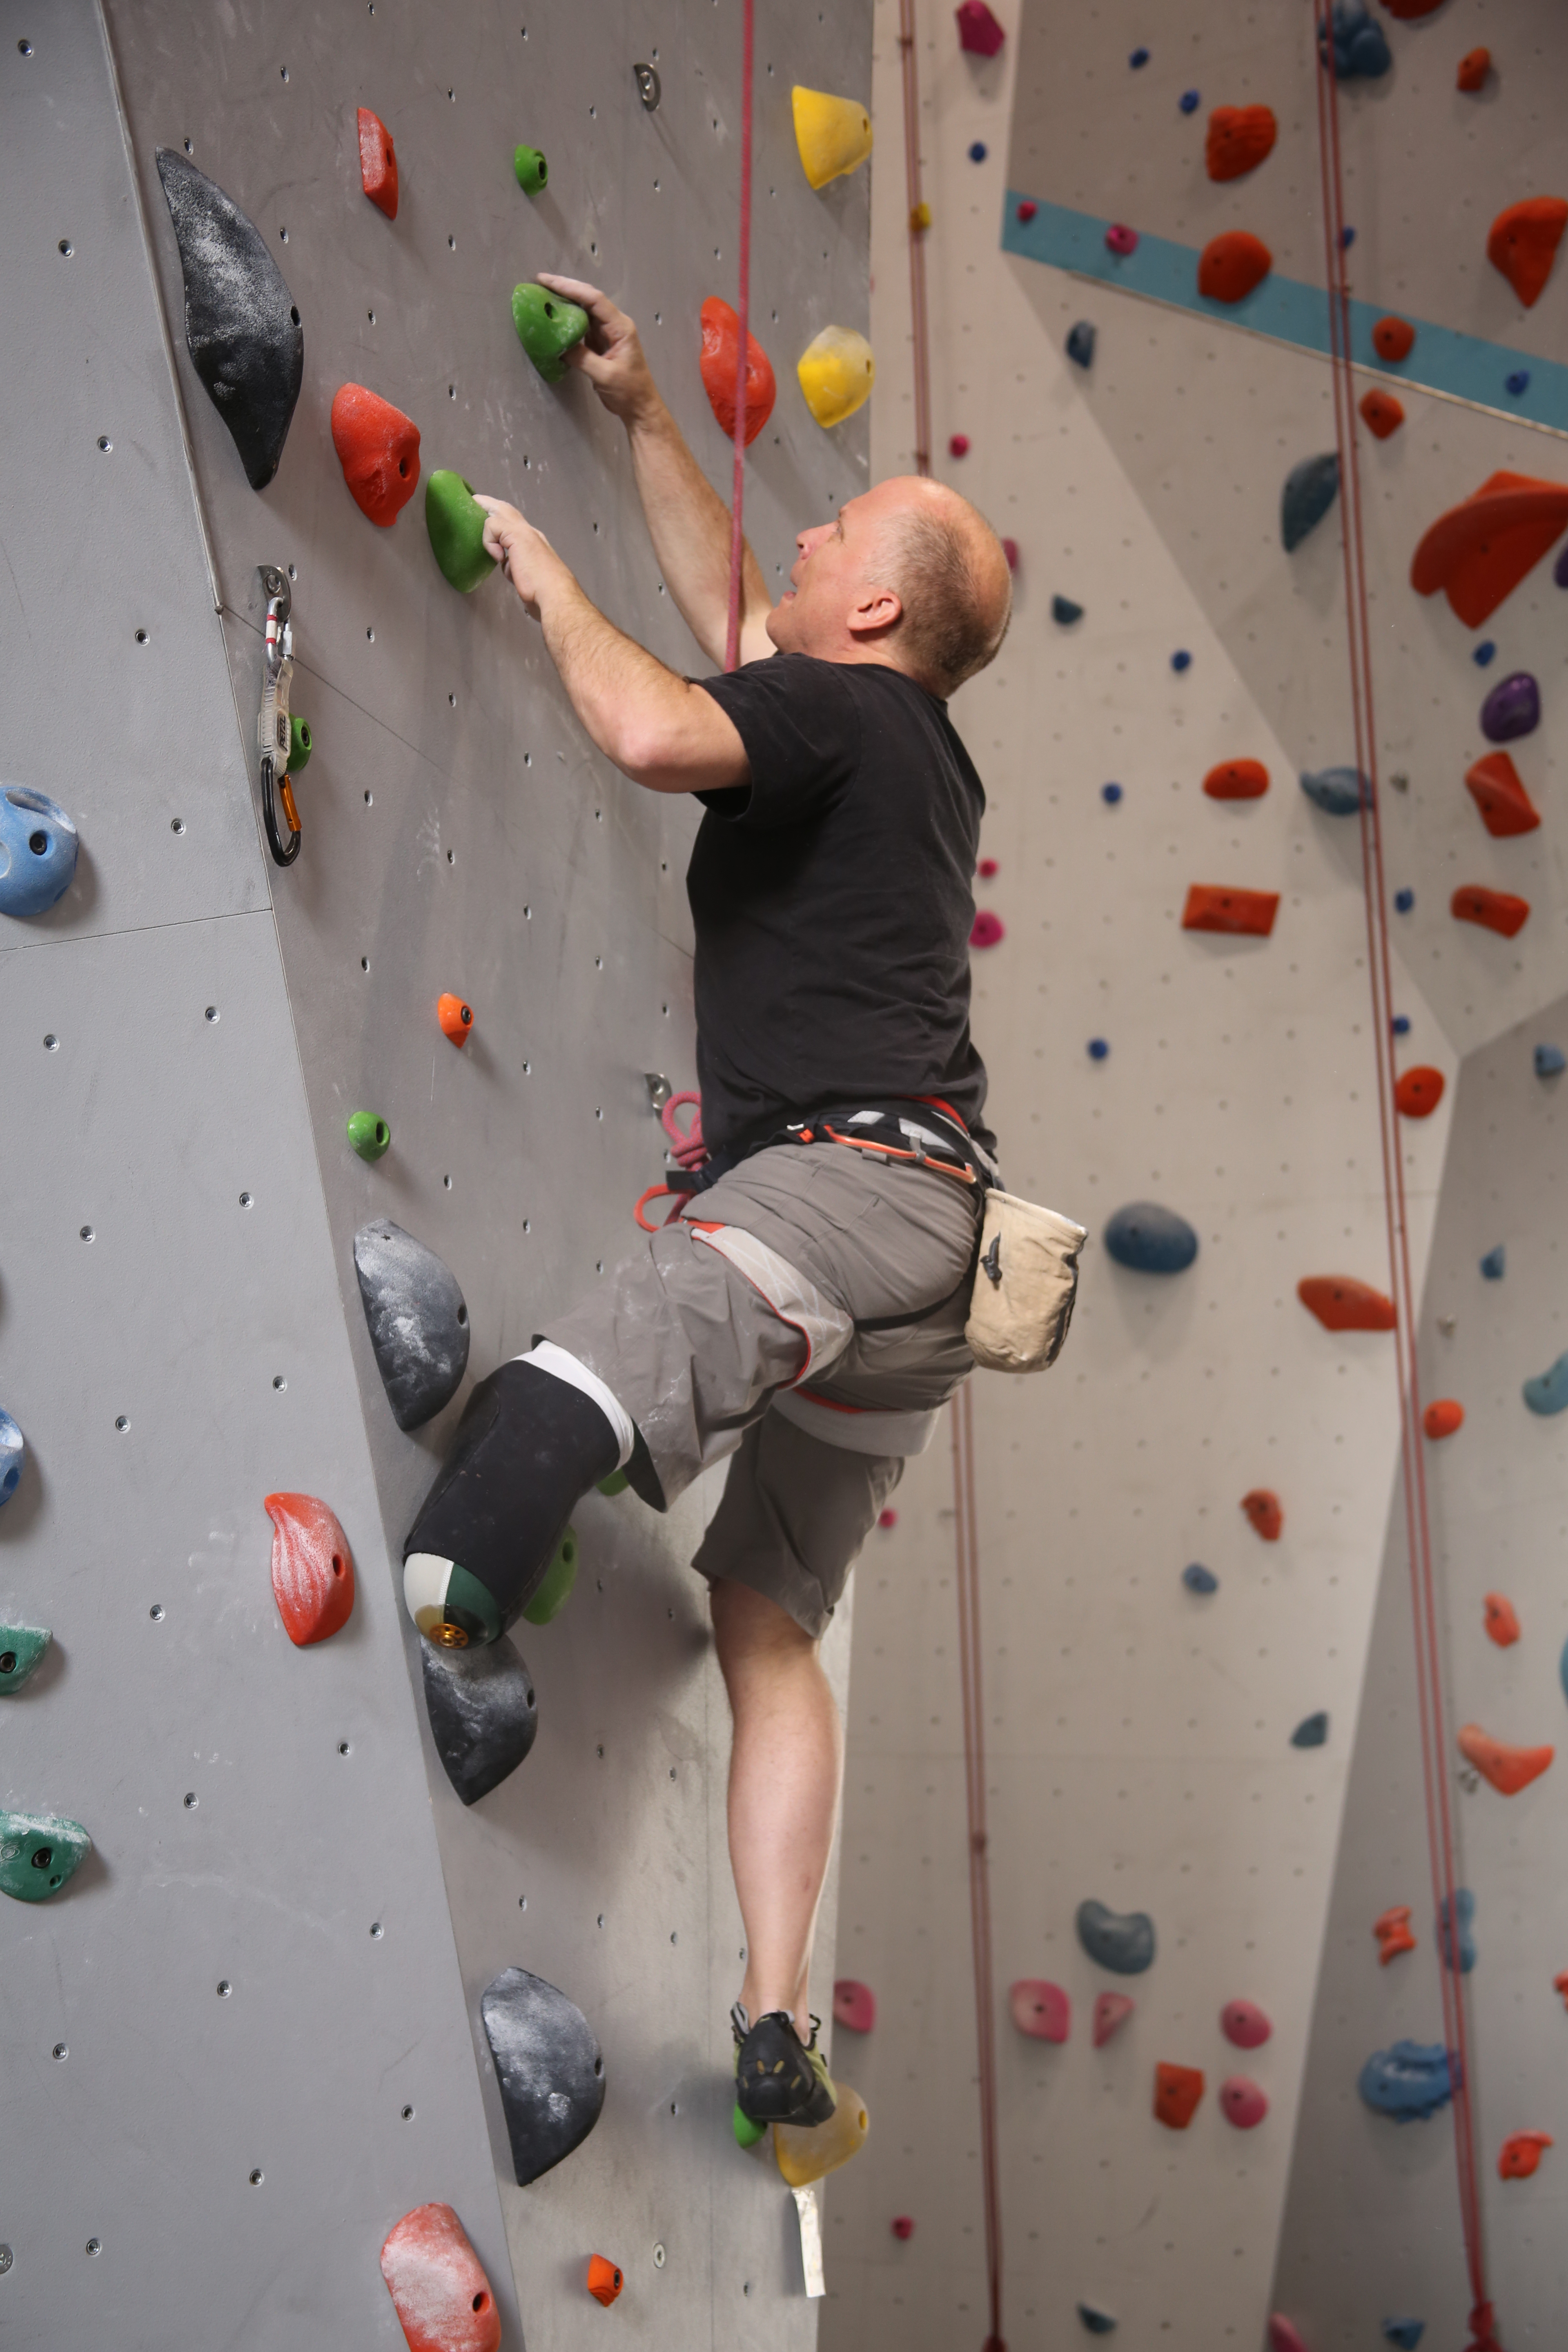 Jim Ewing scales an indoor climbing wall after his amputation.